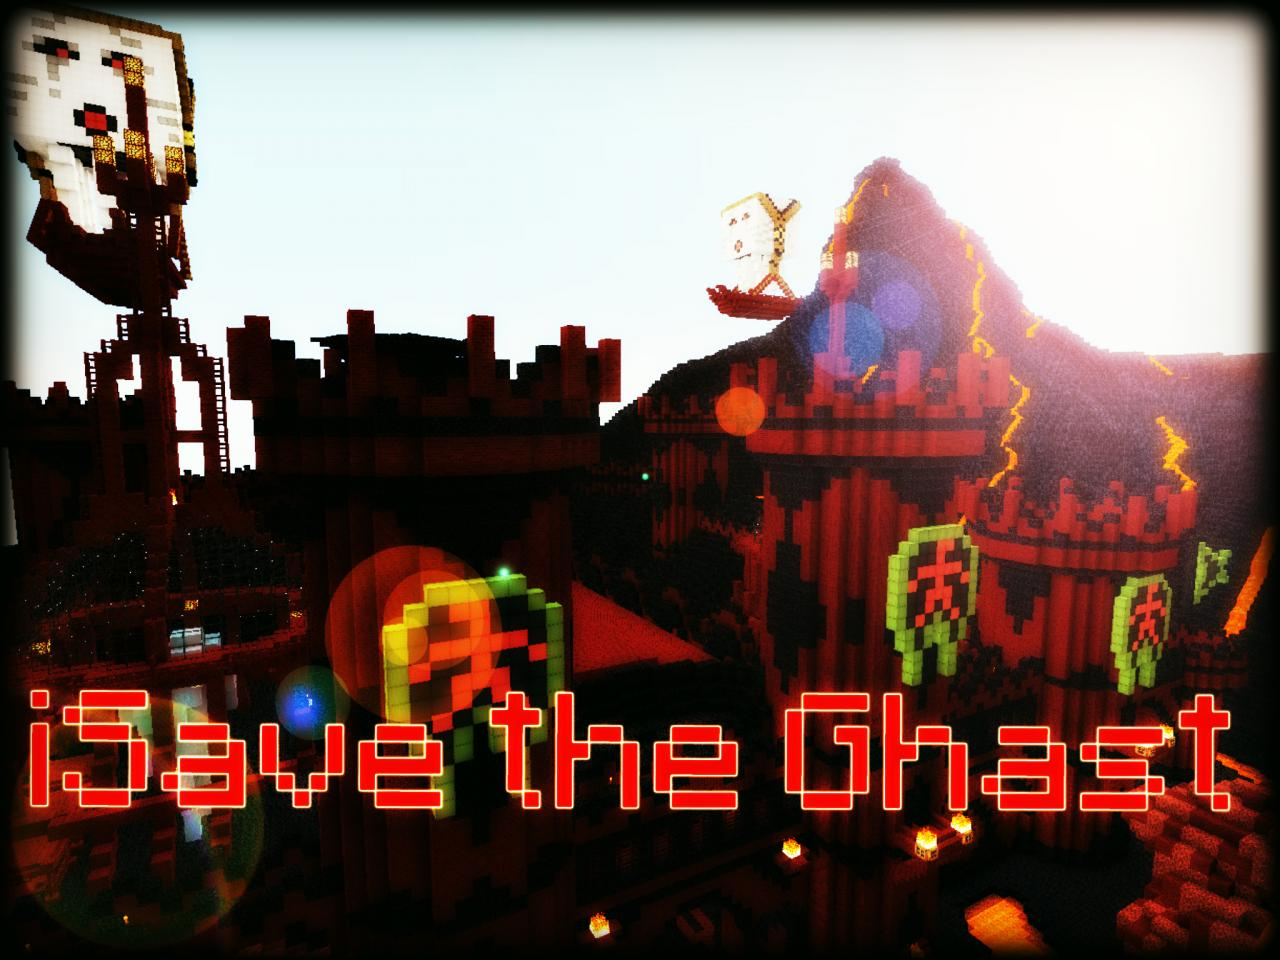 another awesome banner made by ghastlover